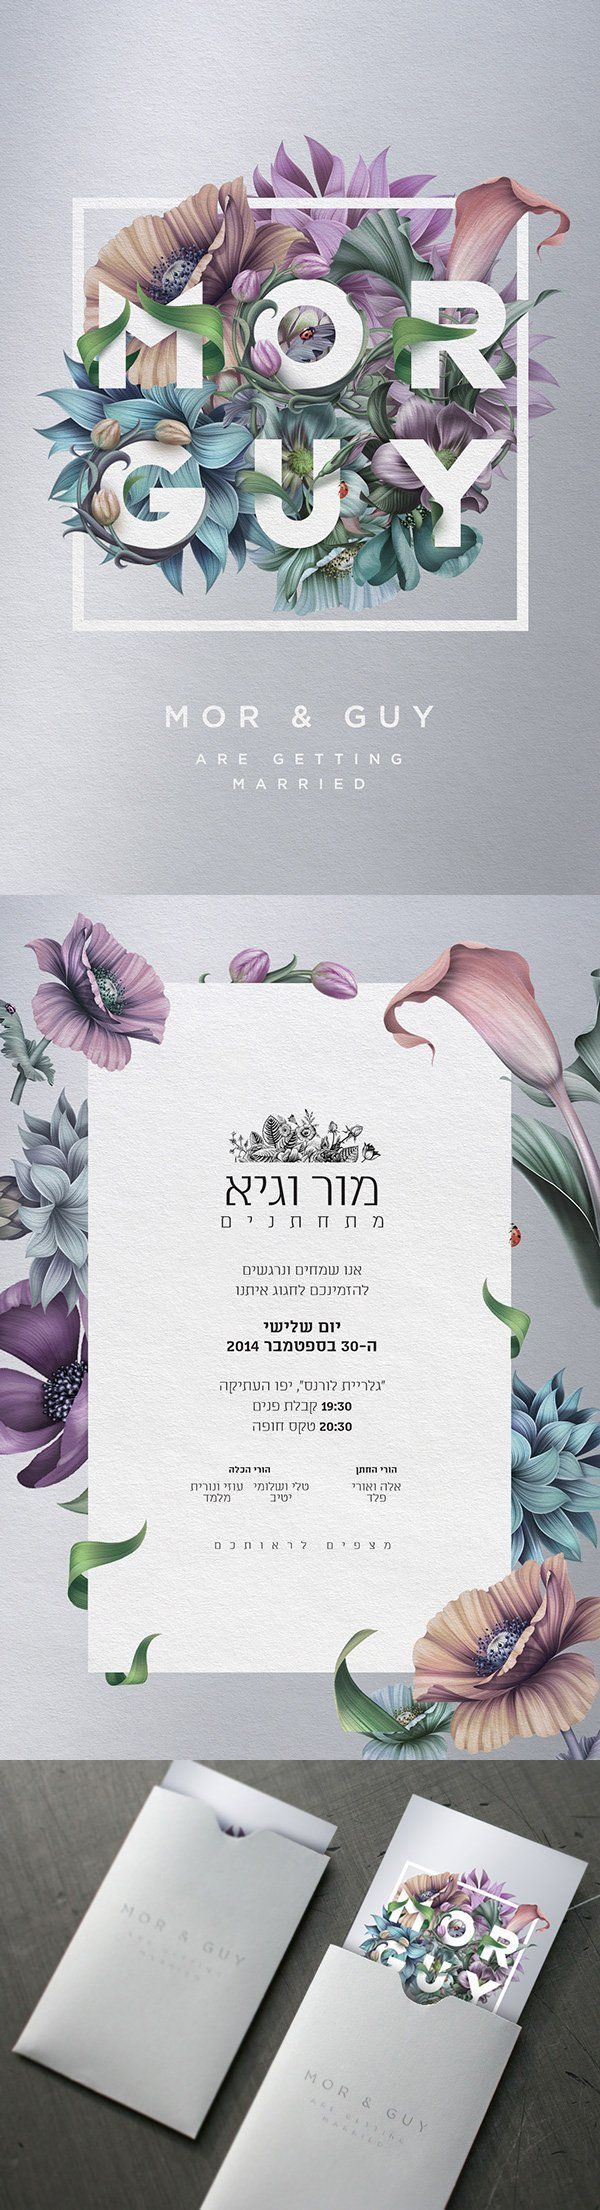 70 best images on pinterest invitation cards cards and a showcase of 50 beautifully designed print invitations to inspire you creative invitation designinvitation card designwedding stopboris Image collections